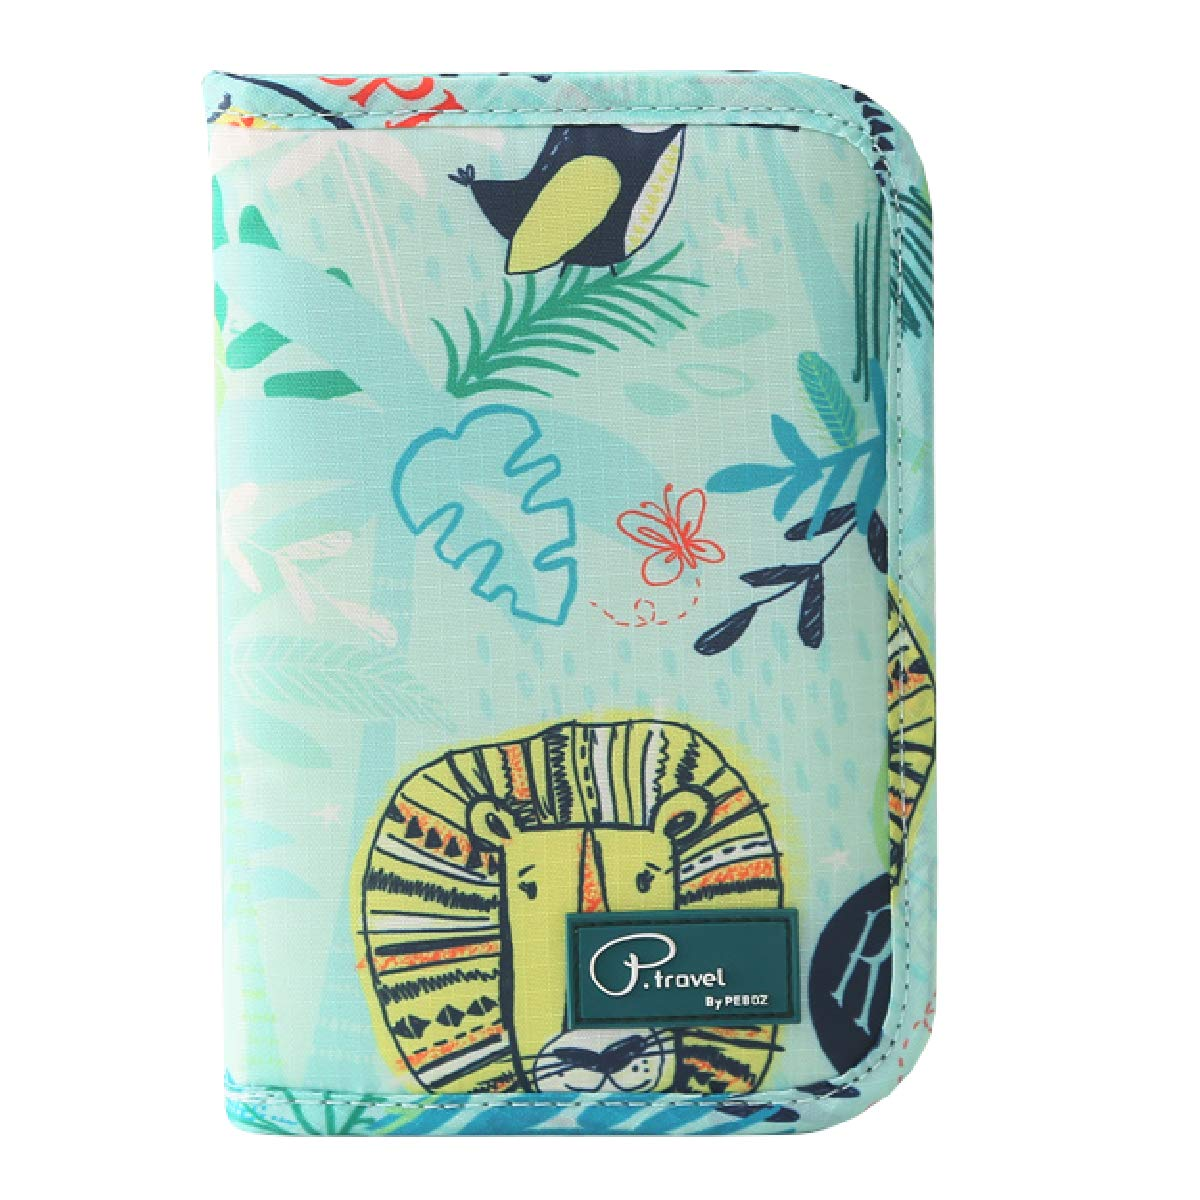 Azarxis Travel Wallet Family Passport Holder Cover Case, Waterproof Ticket Document Organizer Card Holder with Zipper for Mobile Phone, Passports, Cards, Money, Pen (Animal - Green)